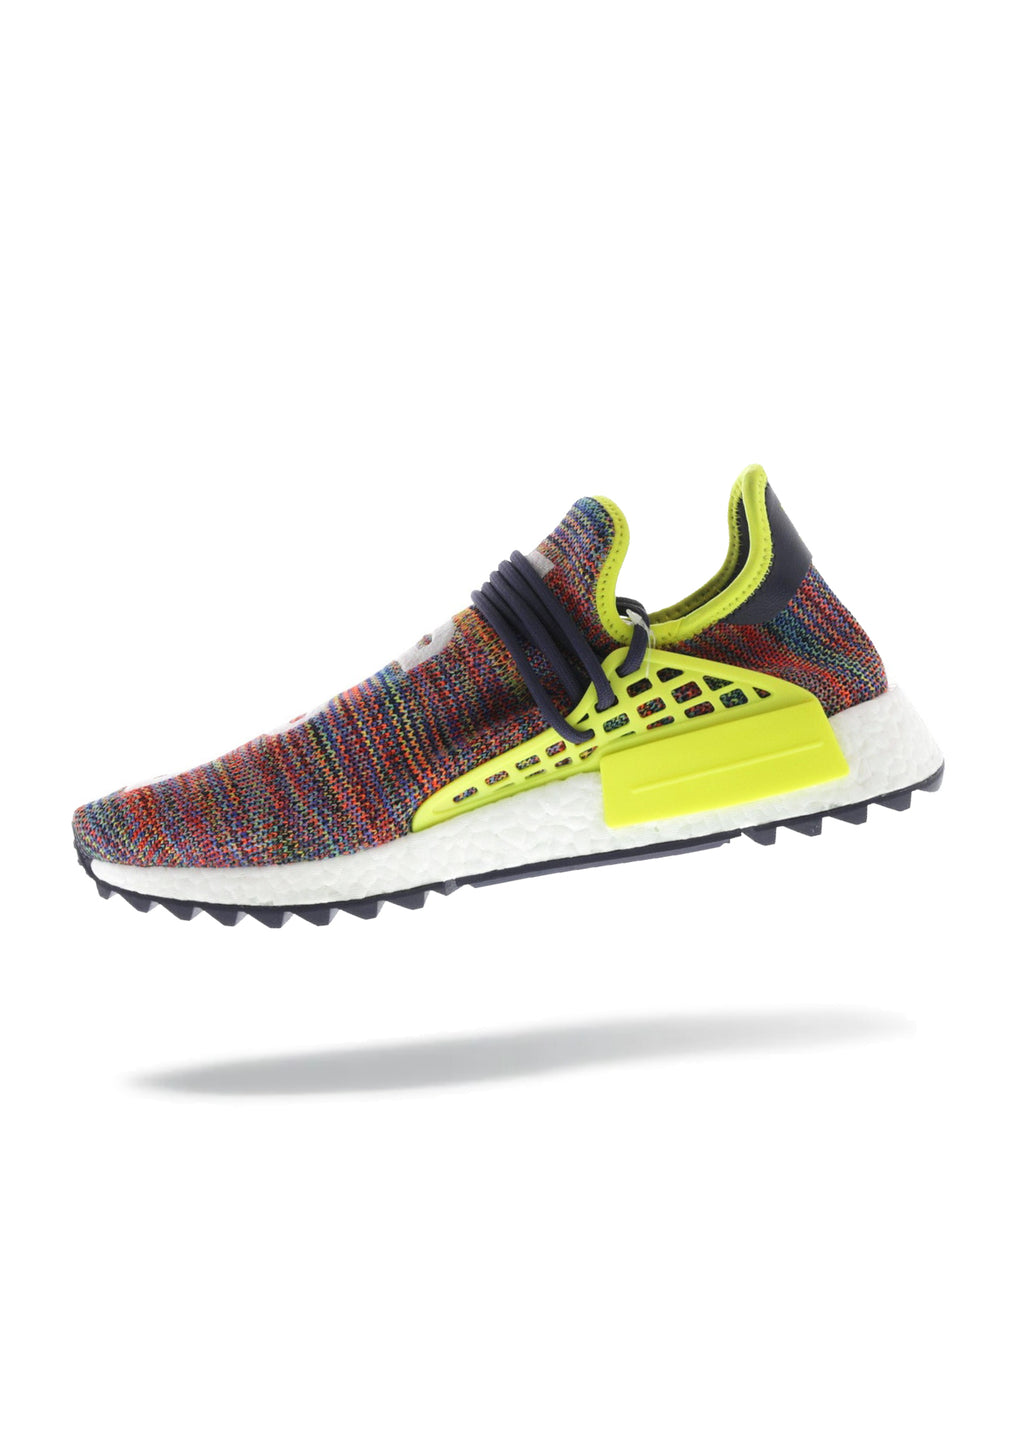 Adidas Human Race NMD Pharrell Multi-Color